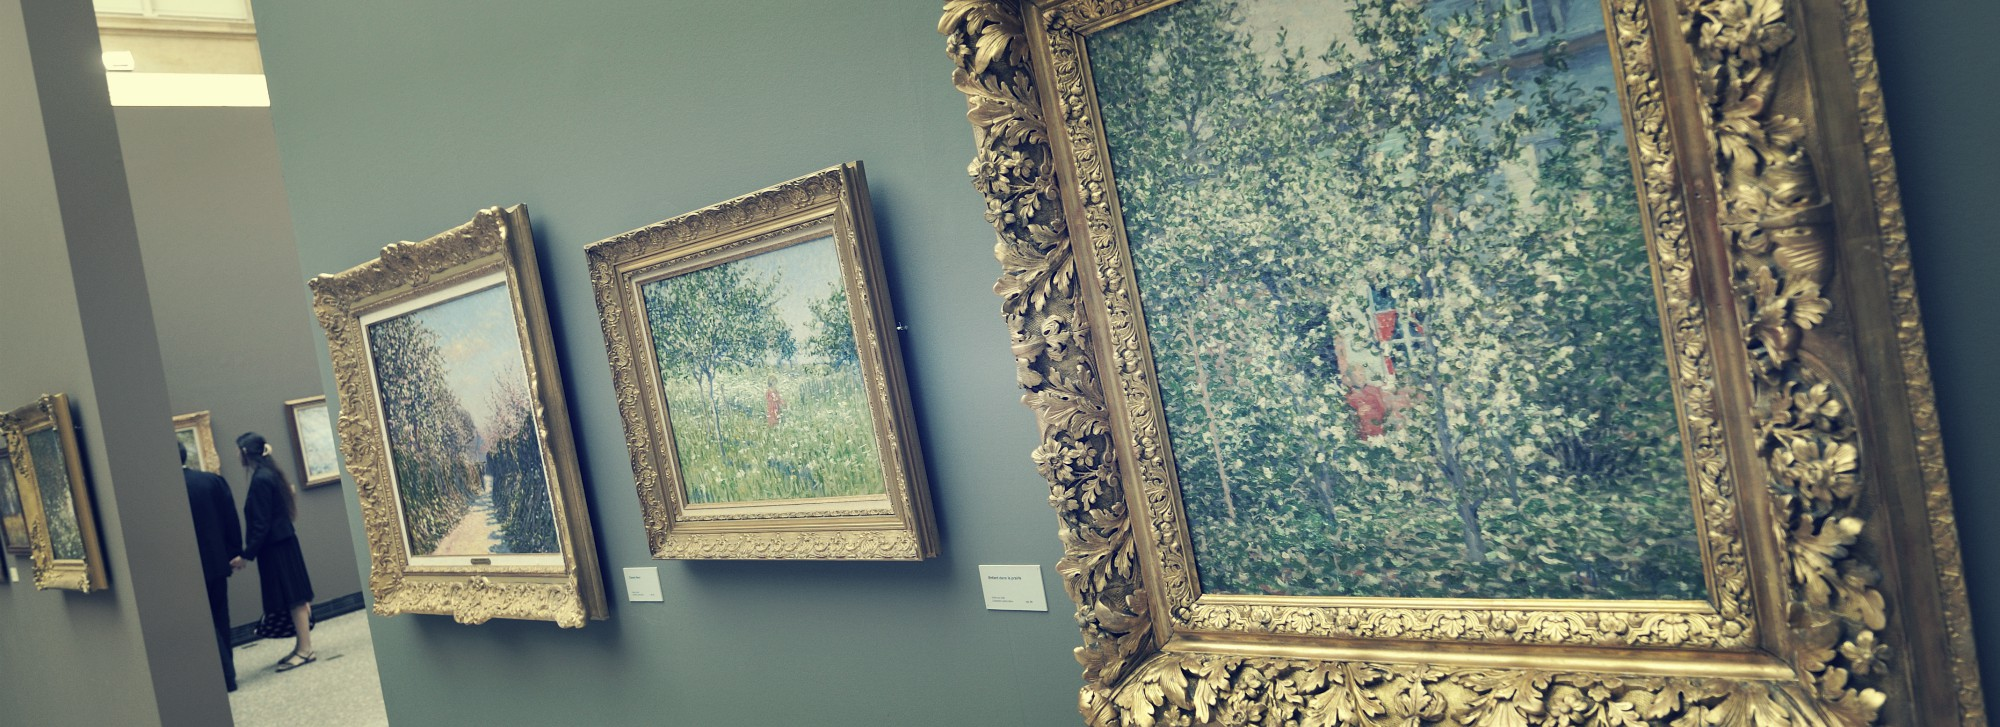 Second largest Impressionist collection in France